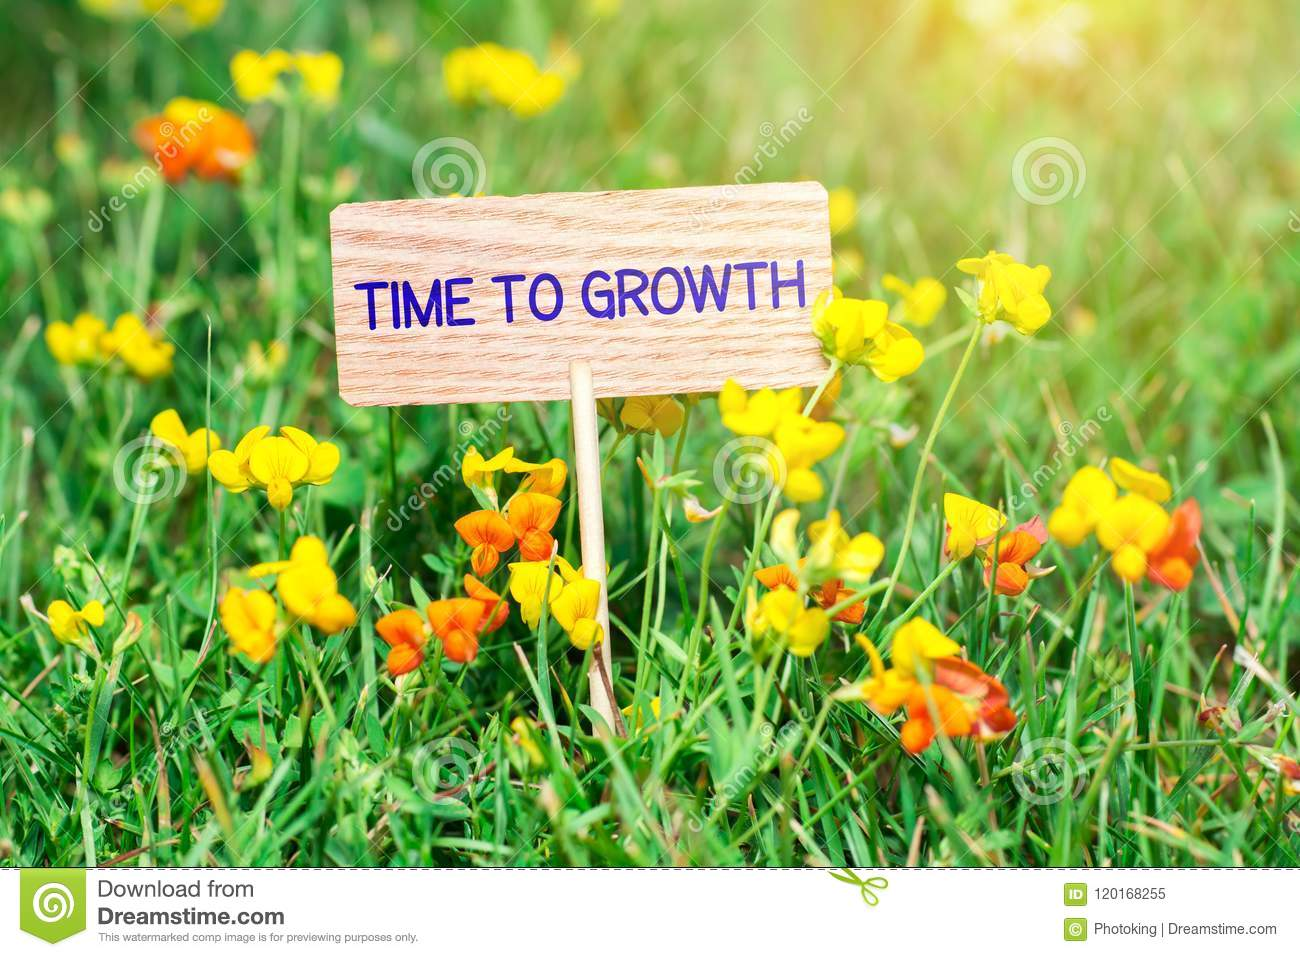 Time to growth signboard